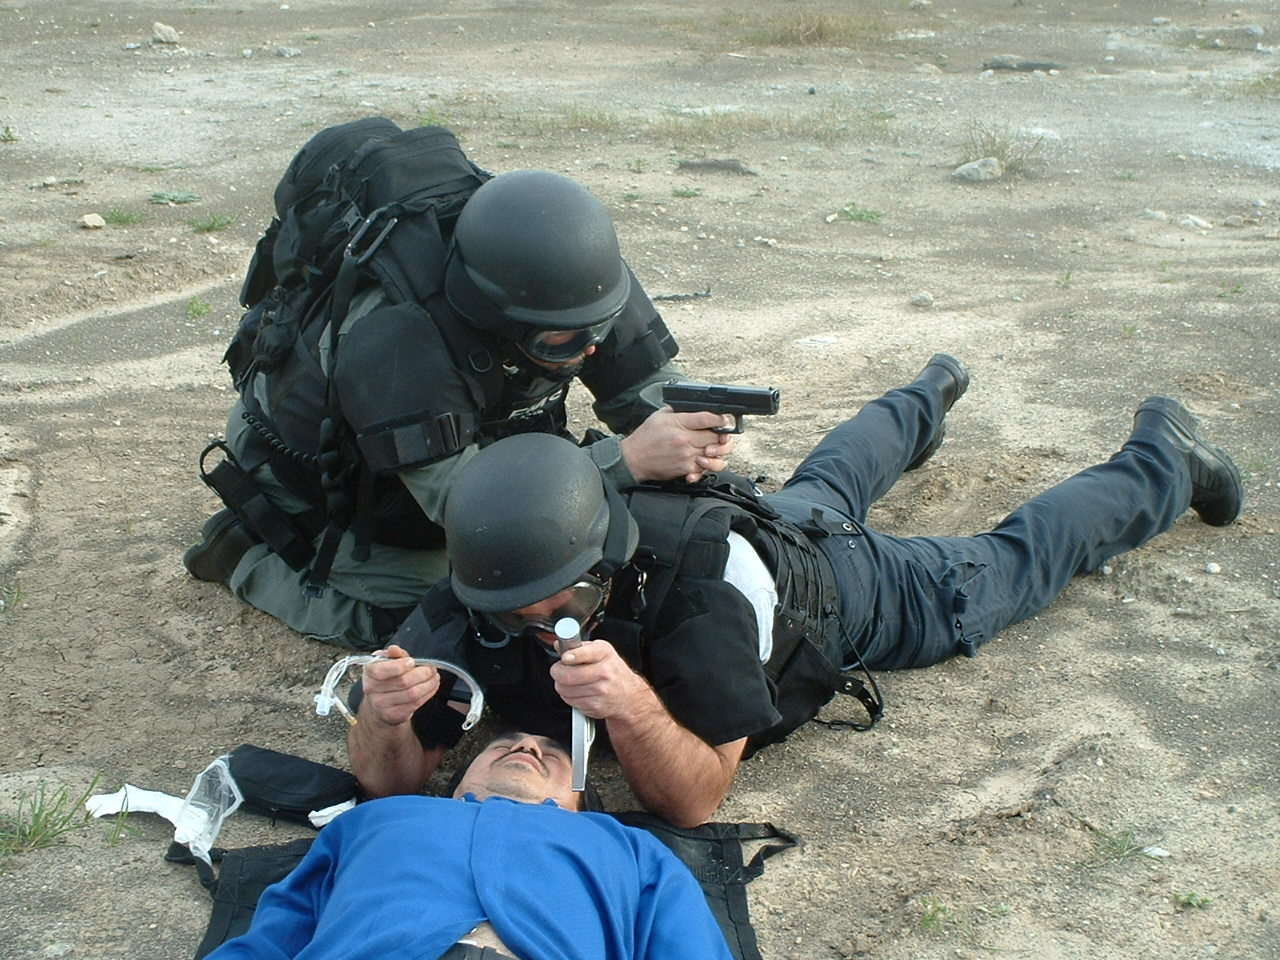 Photo of Tactical support medics treating an injured man